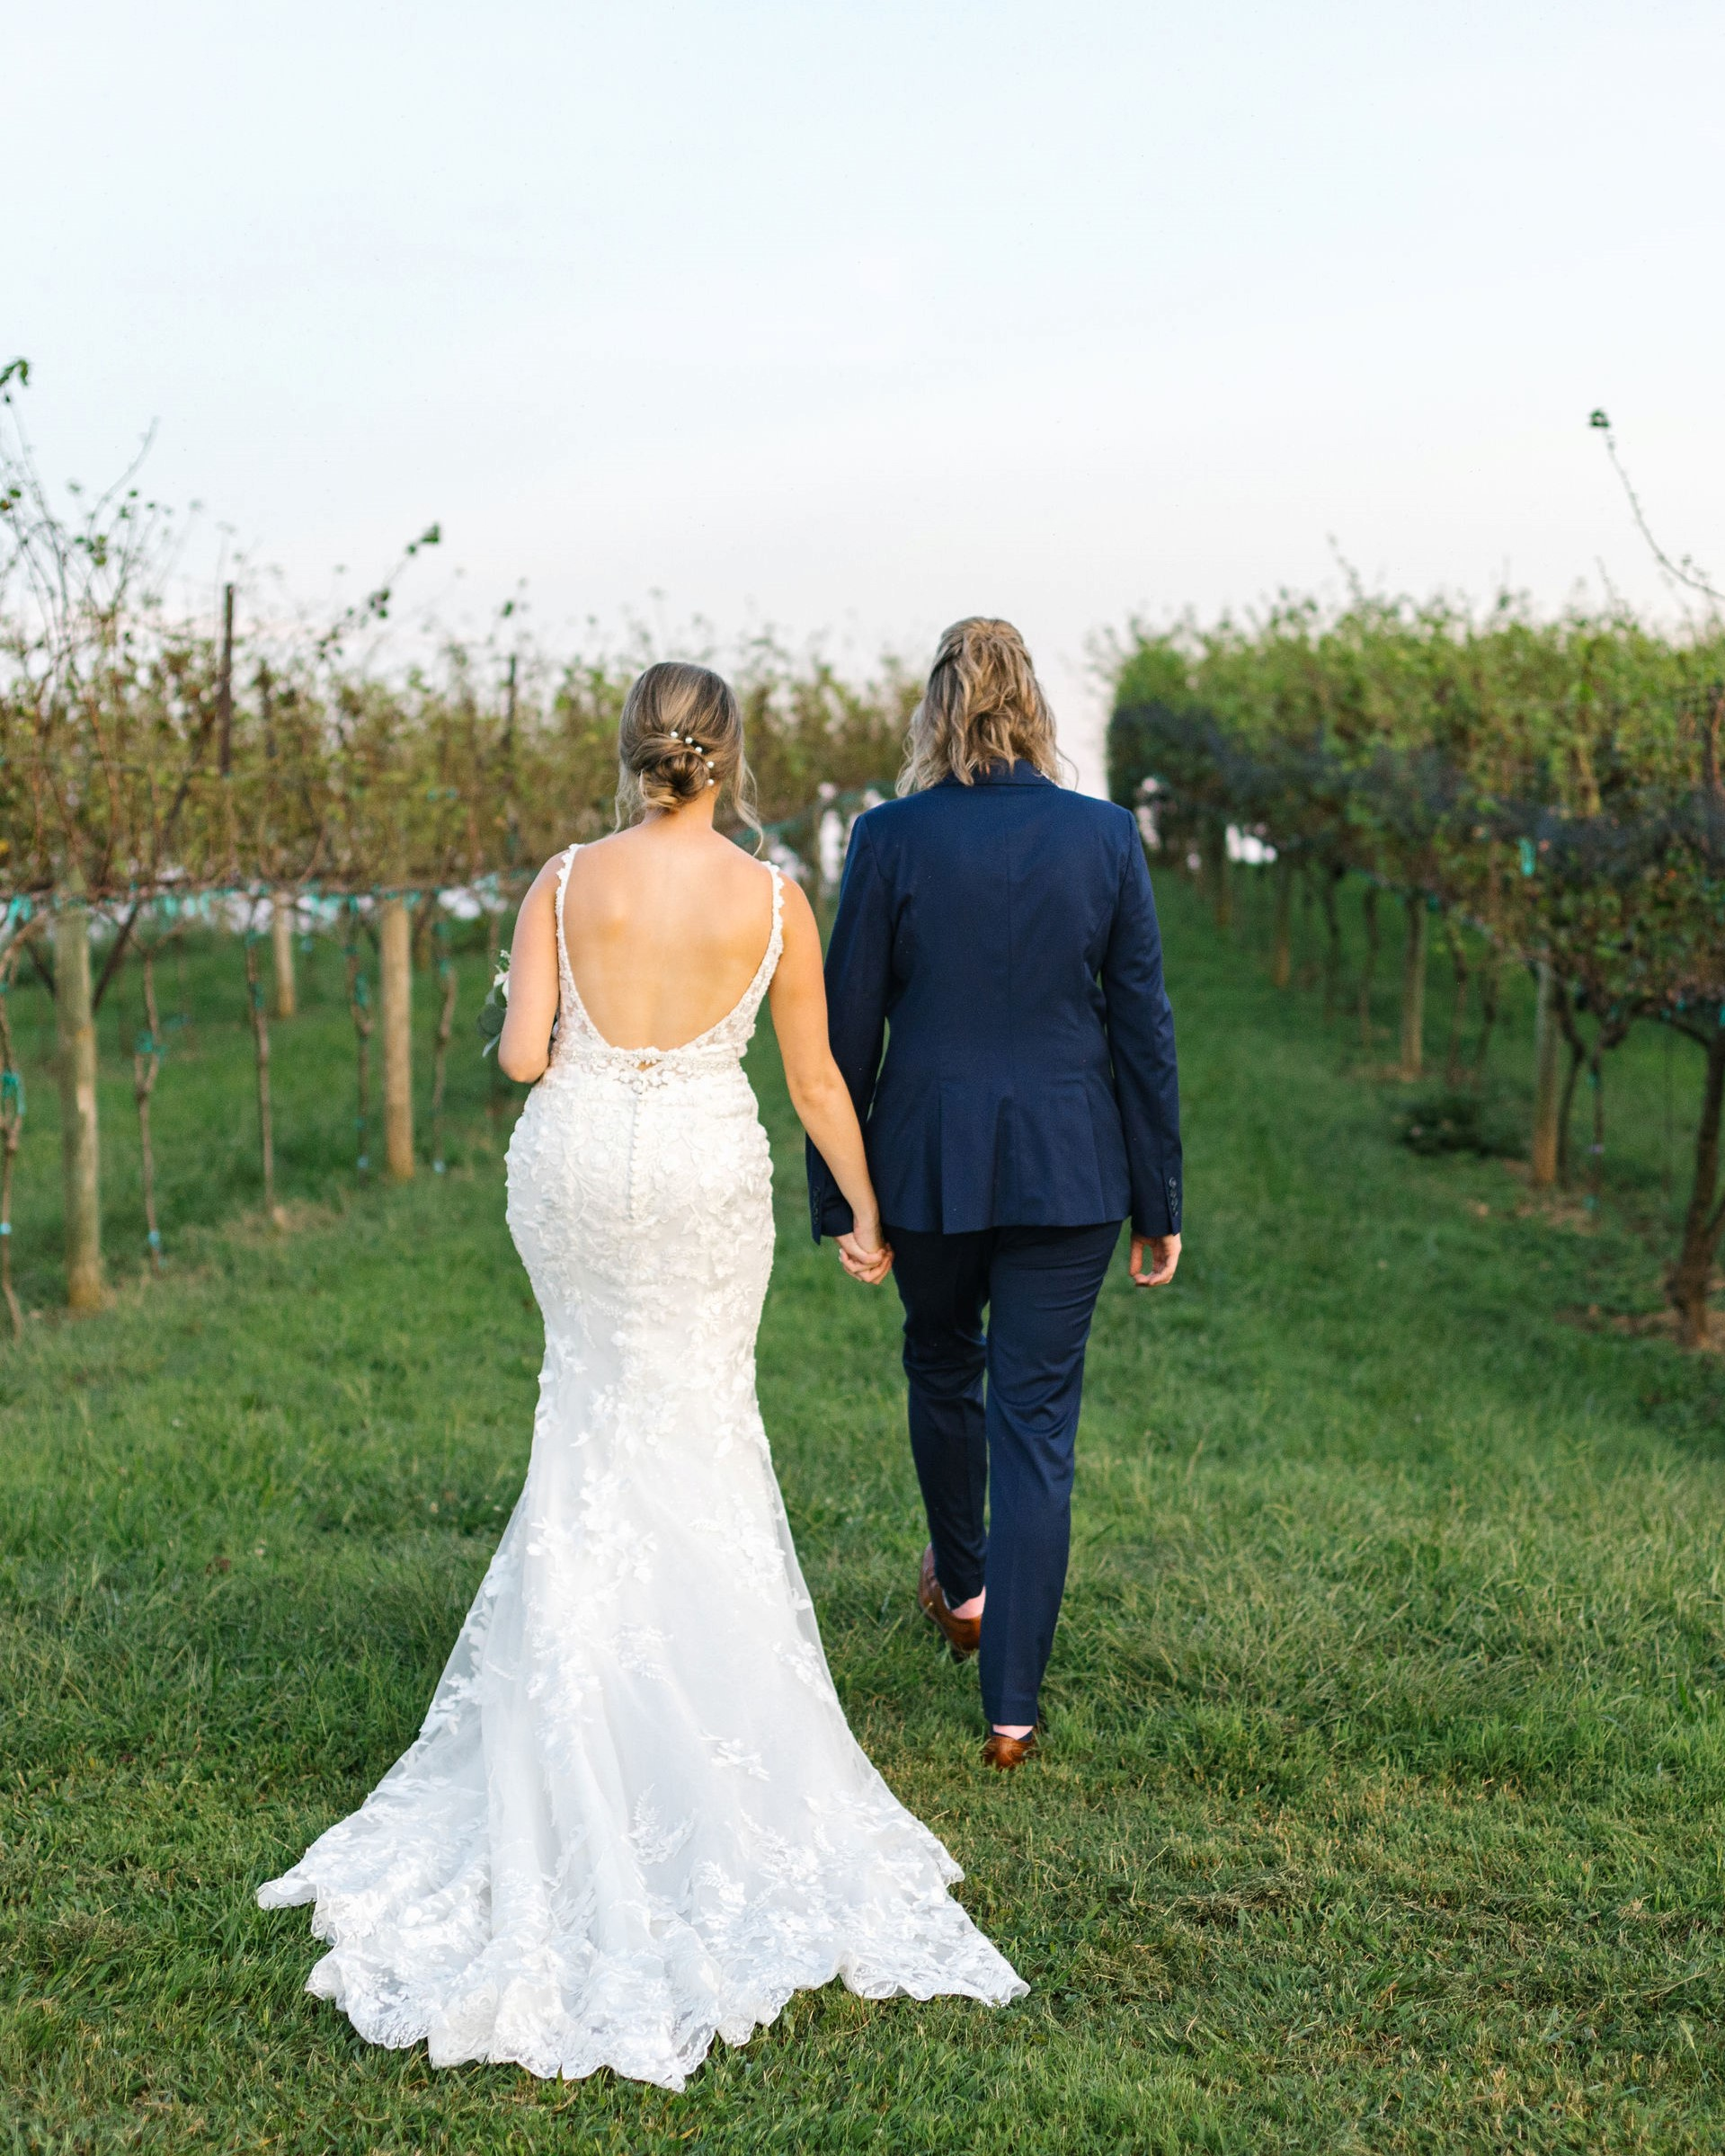 Two brides holding hands at their vineyard wedding